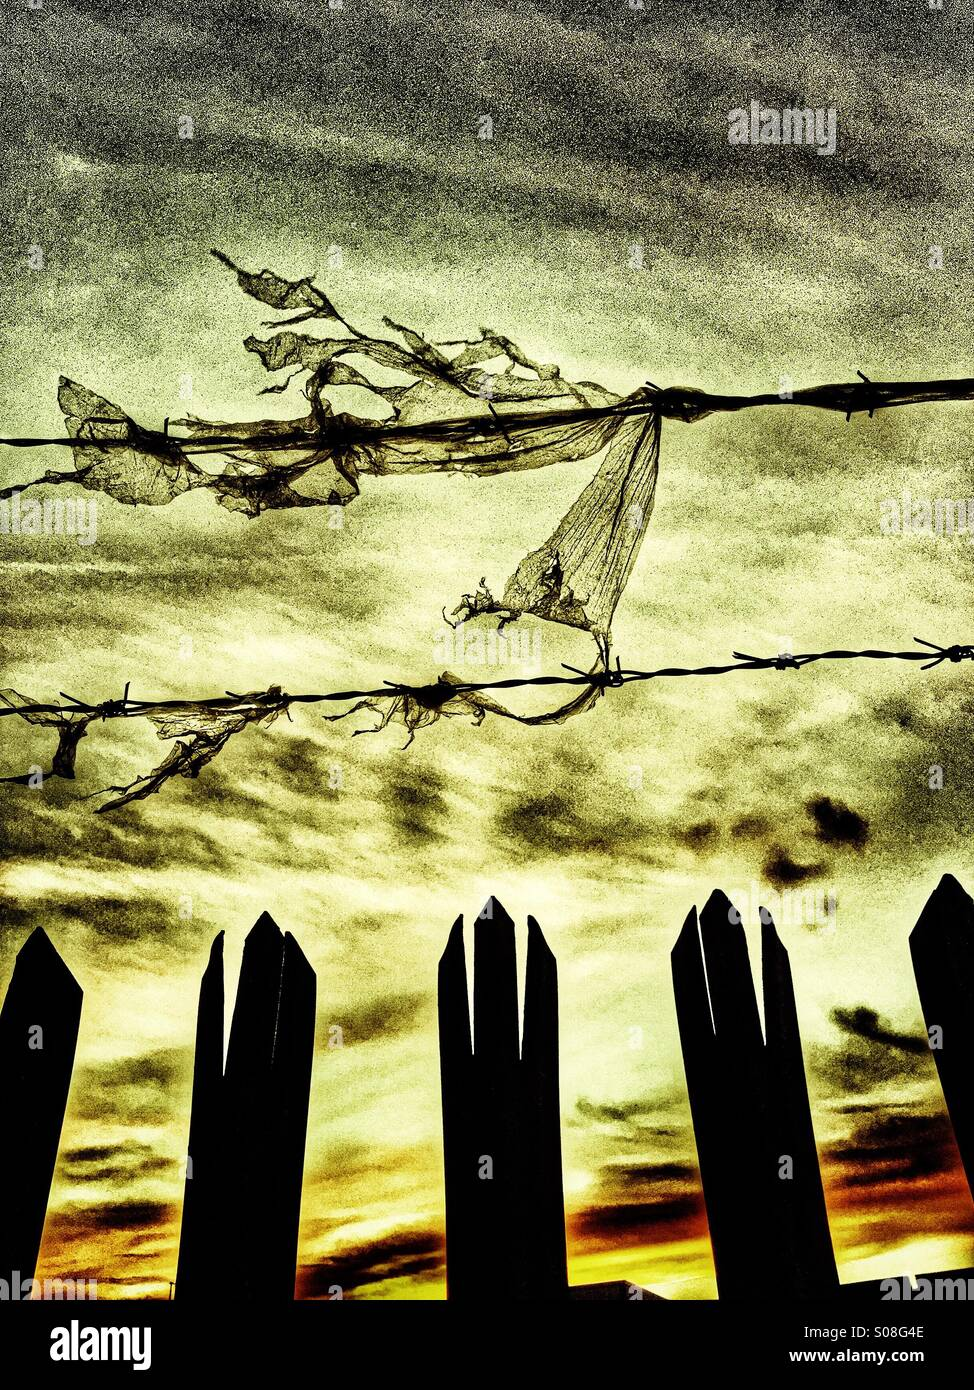 Barbwire and metal fence at sunset - Stock Image